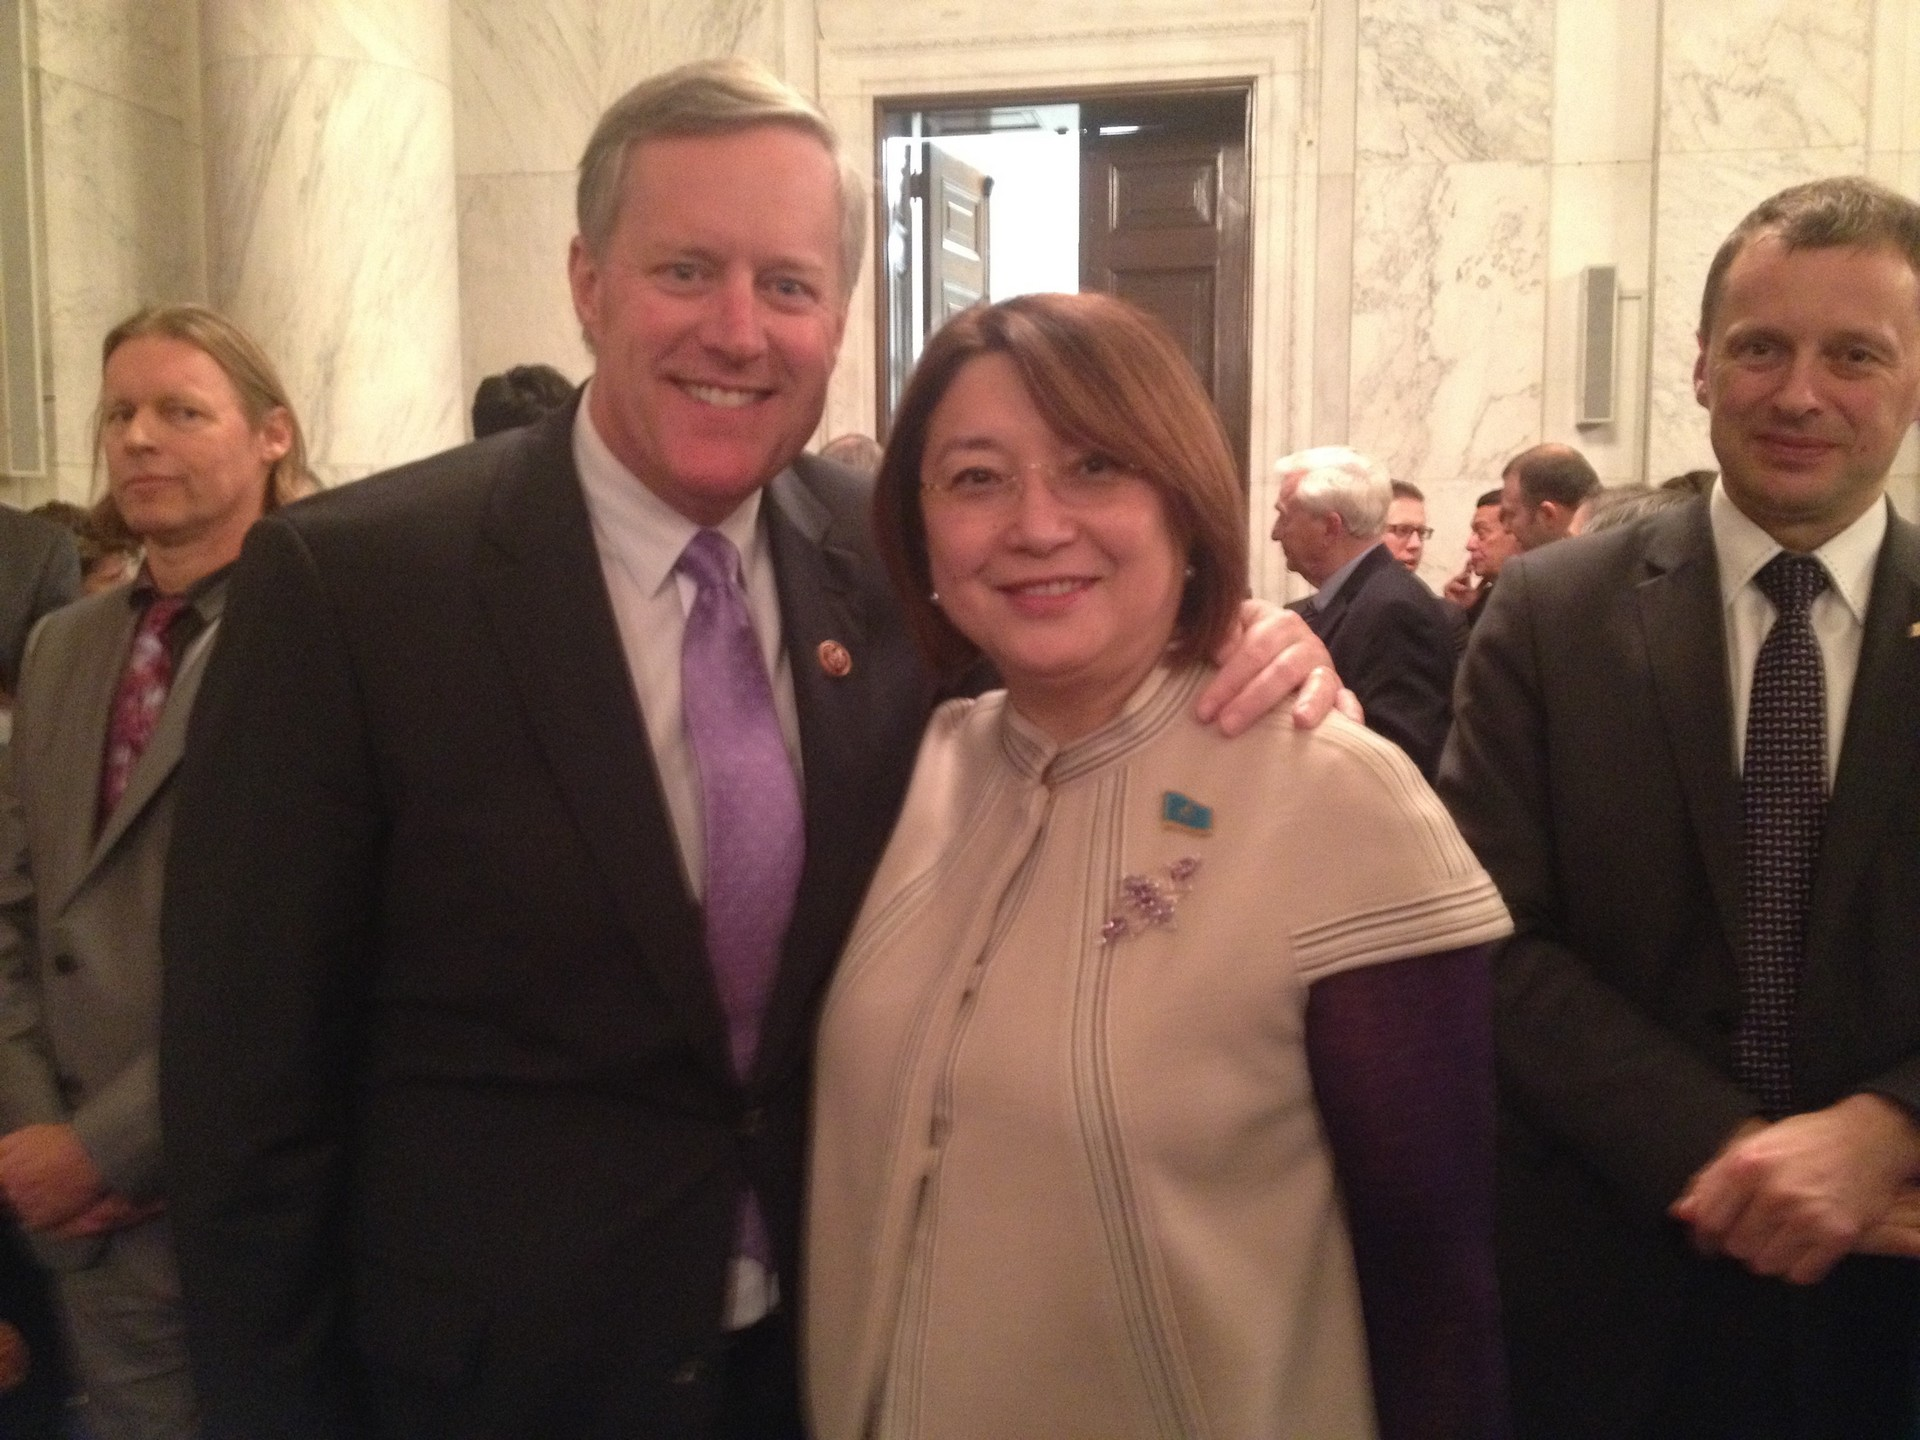 Mark Meadows and Senator Aitimova at the reception at the Kenedy Causus Room, Feb 27, 2014